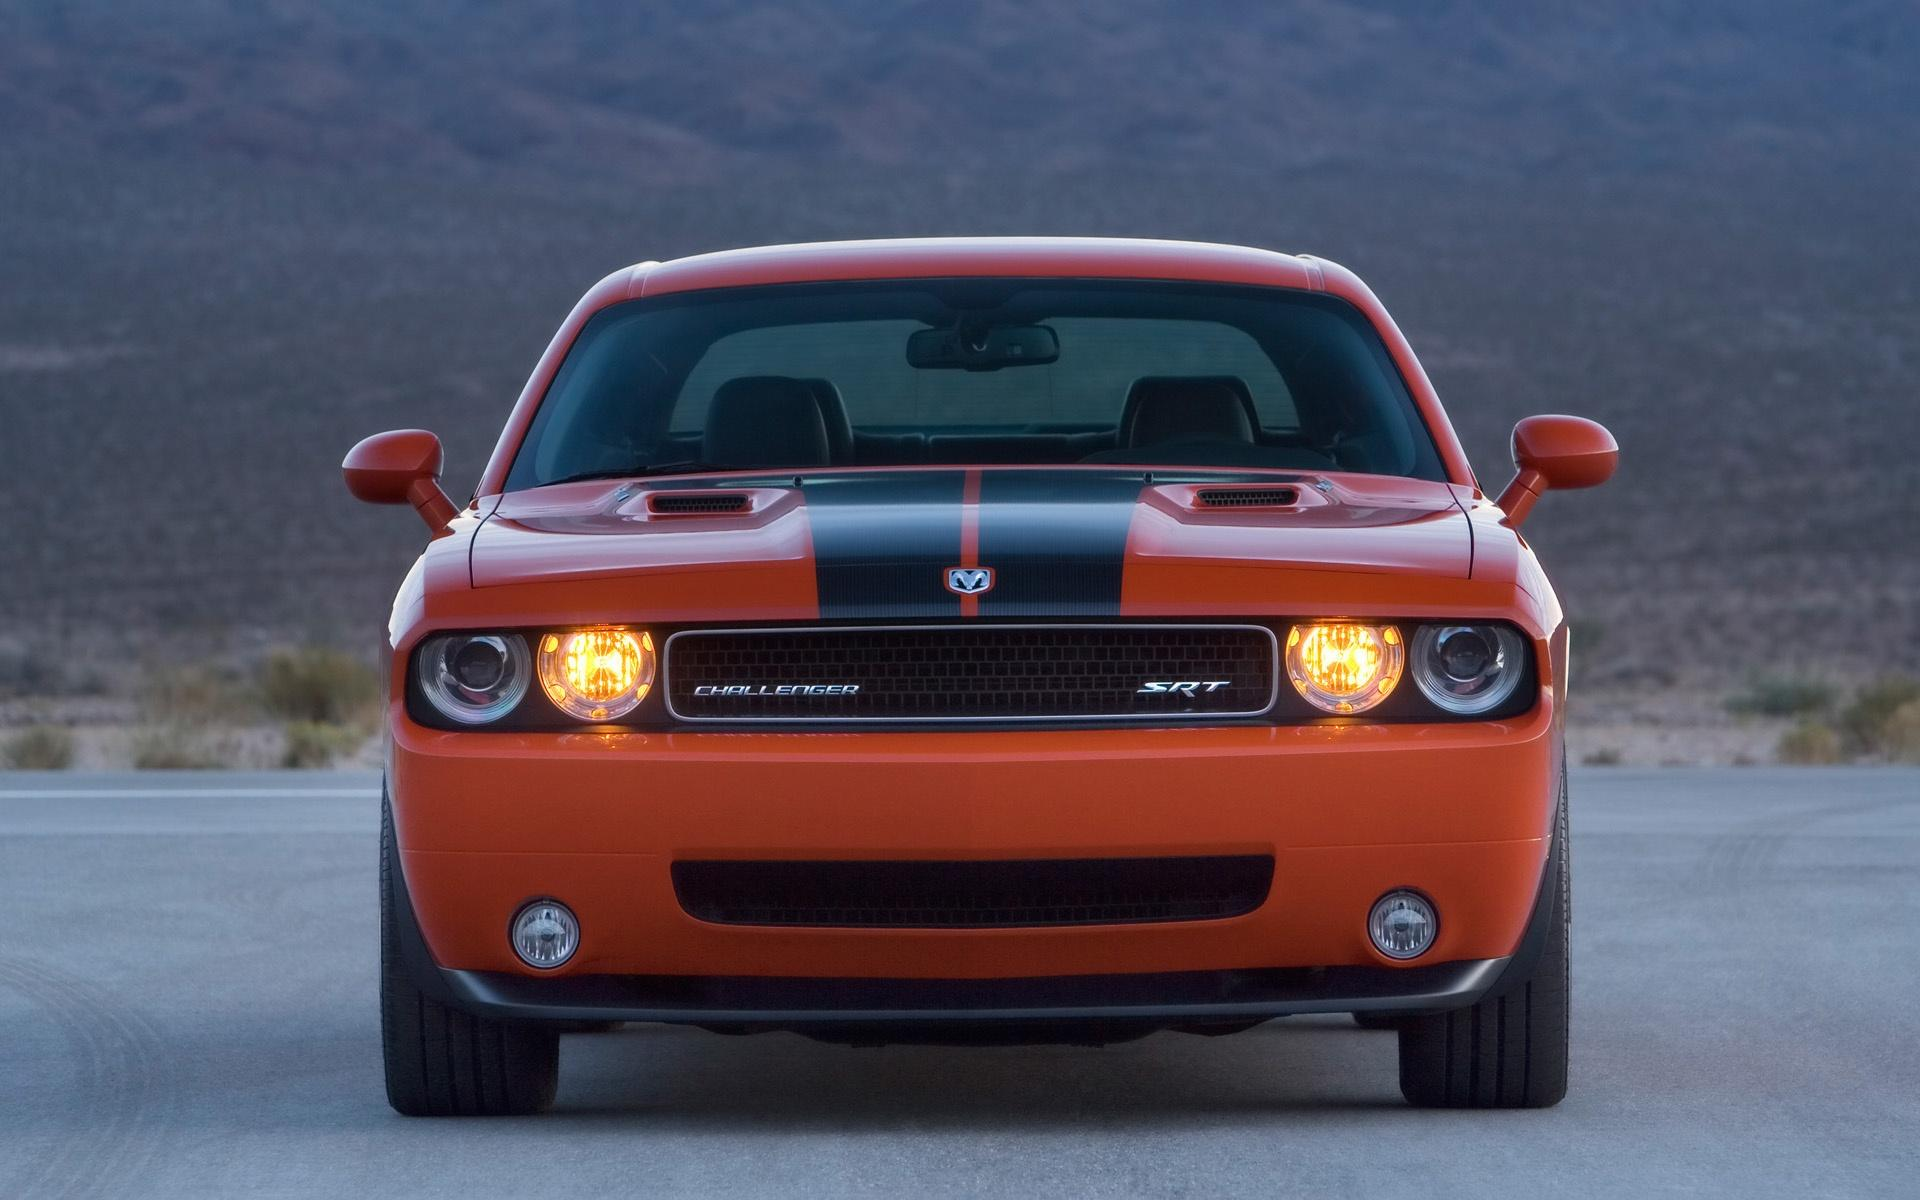 2008 Dodge Challenger Srt8 Front Headlights 1920x1200